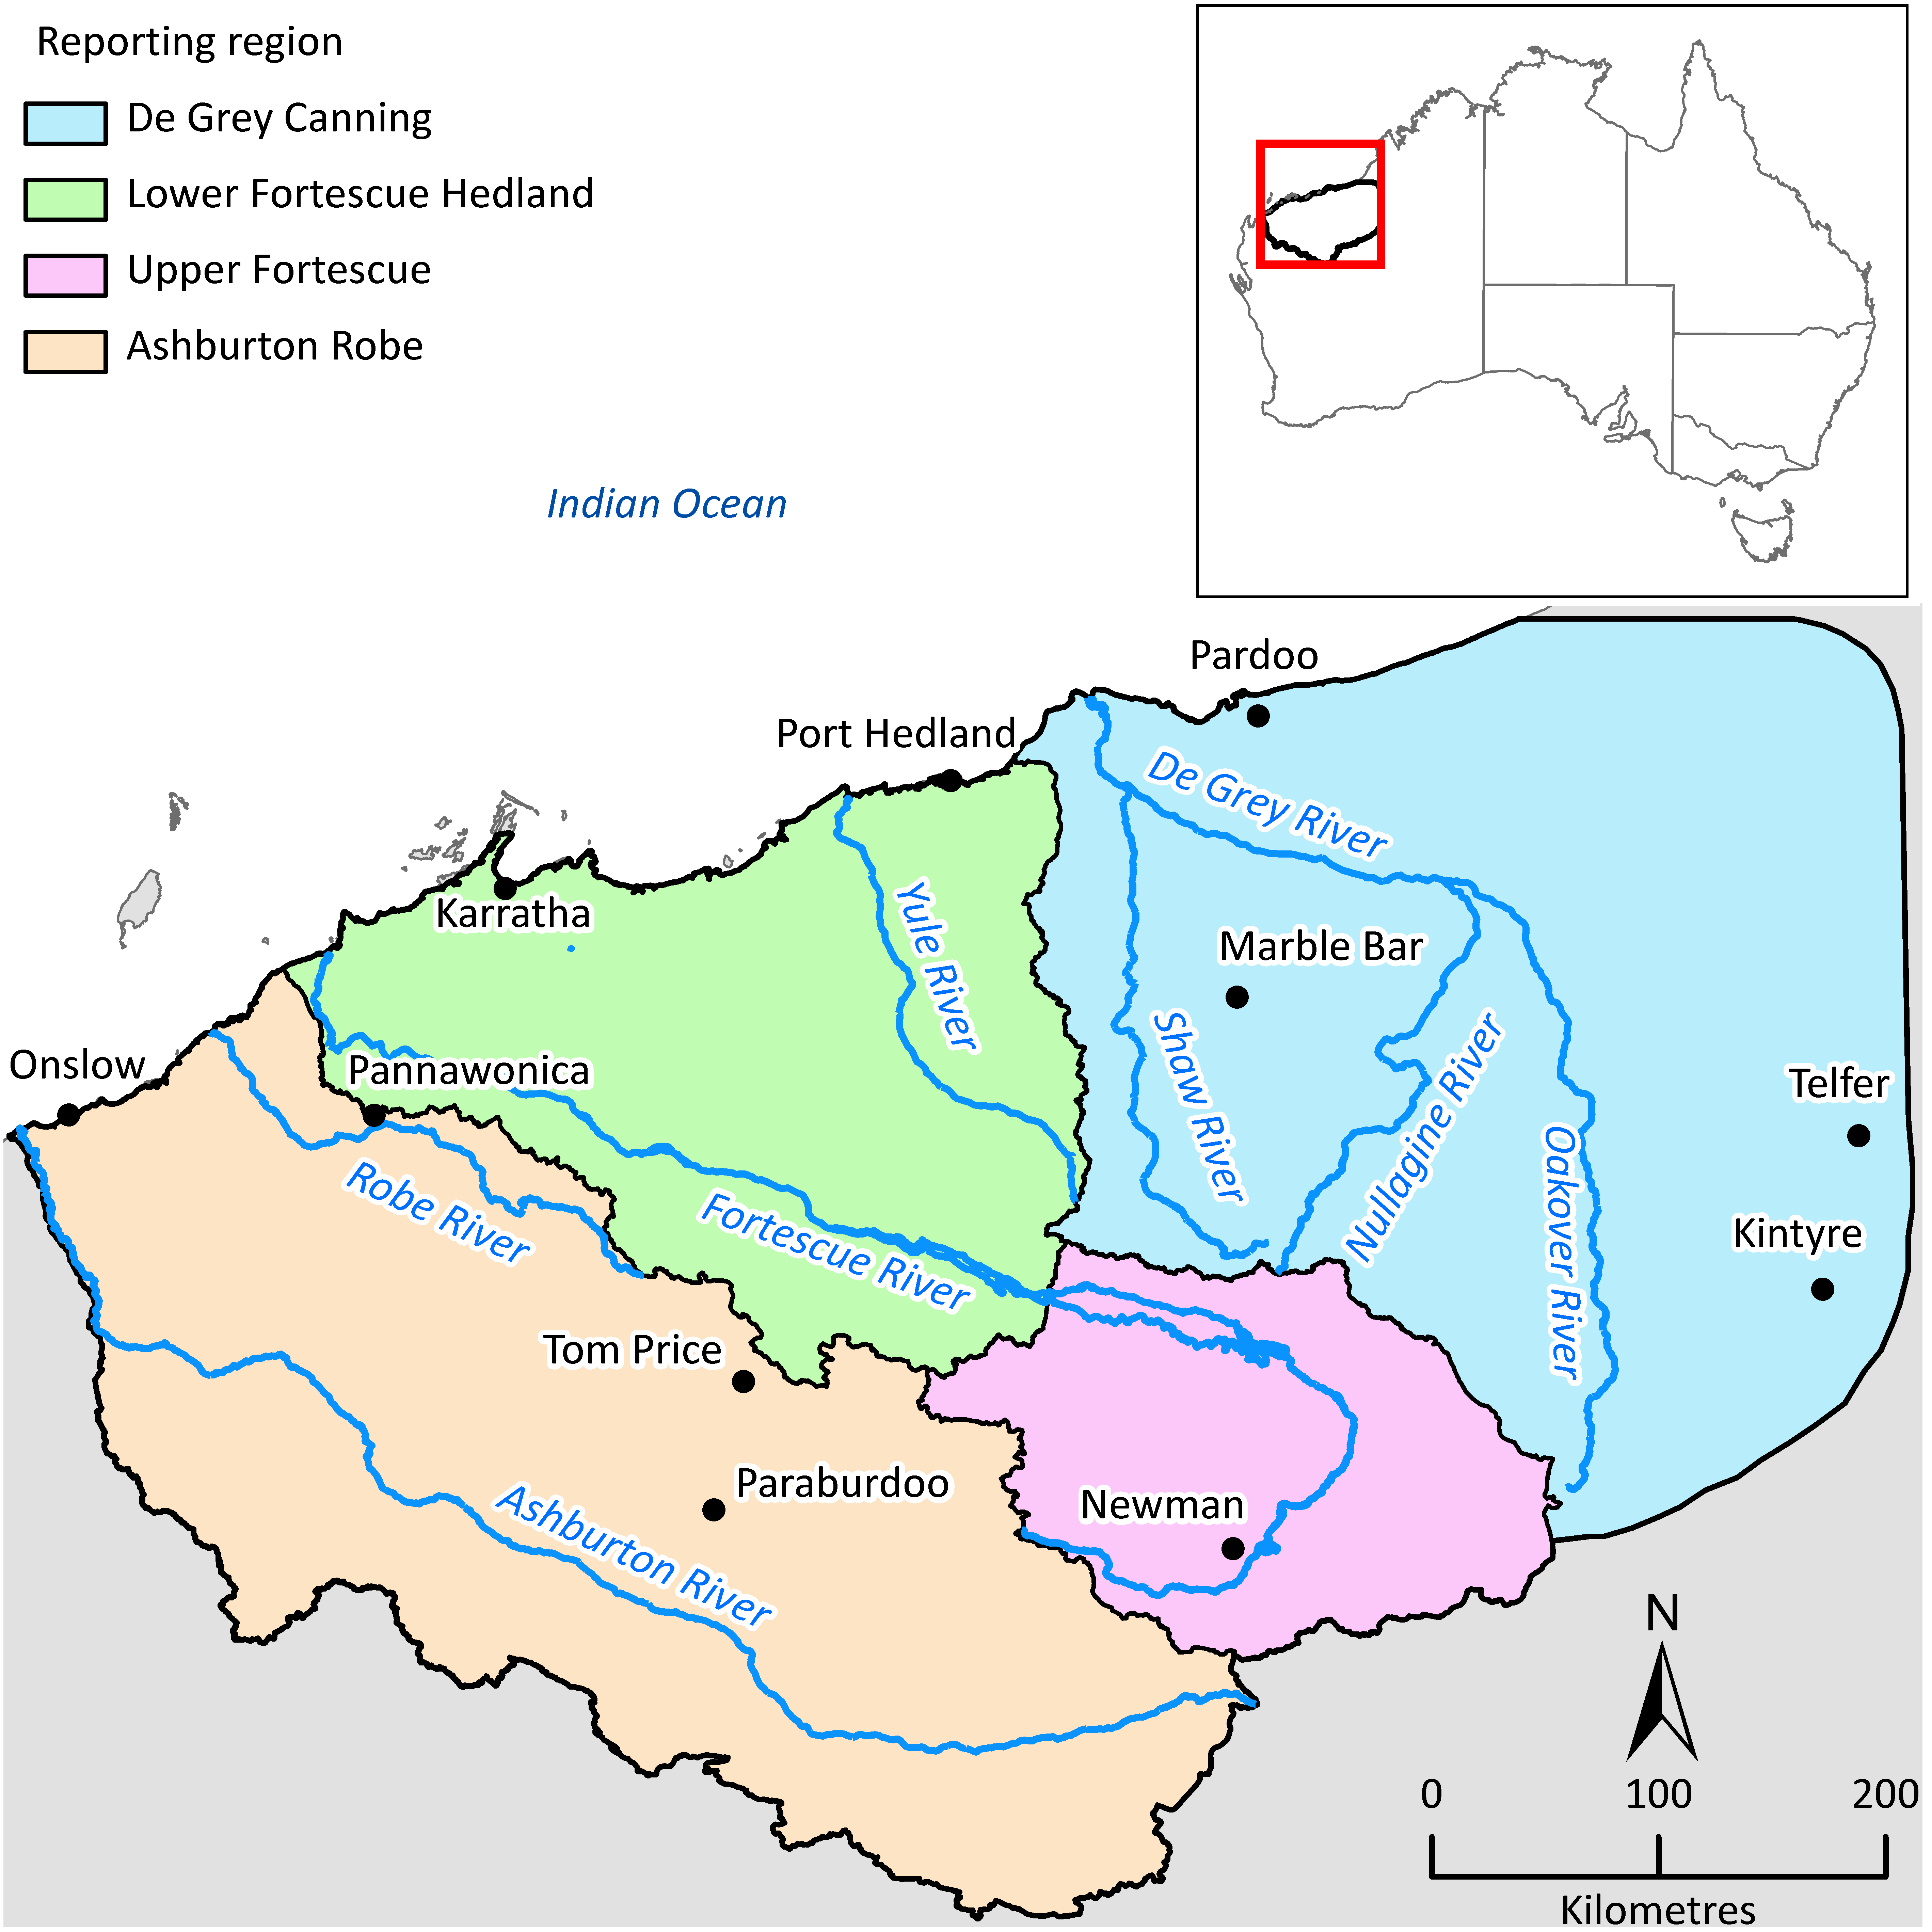 Map and legend showing the four reporting regions for the Pilbara Water Resource Assessment.